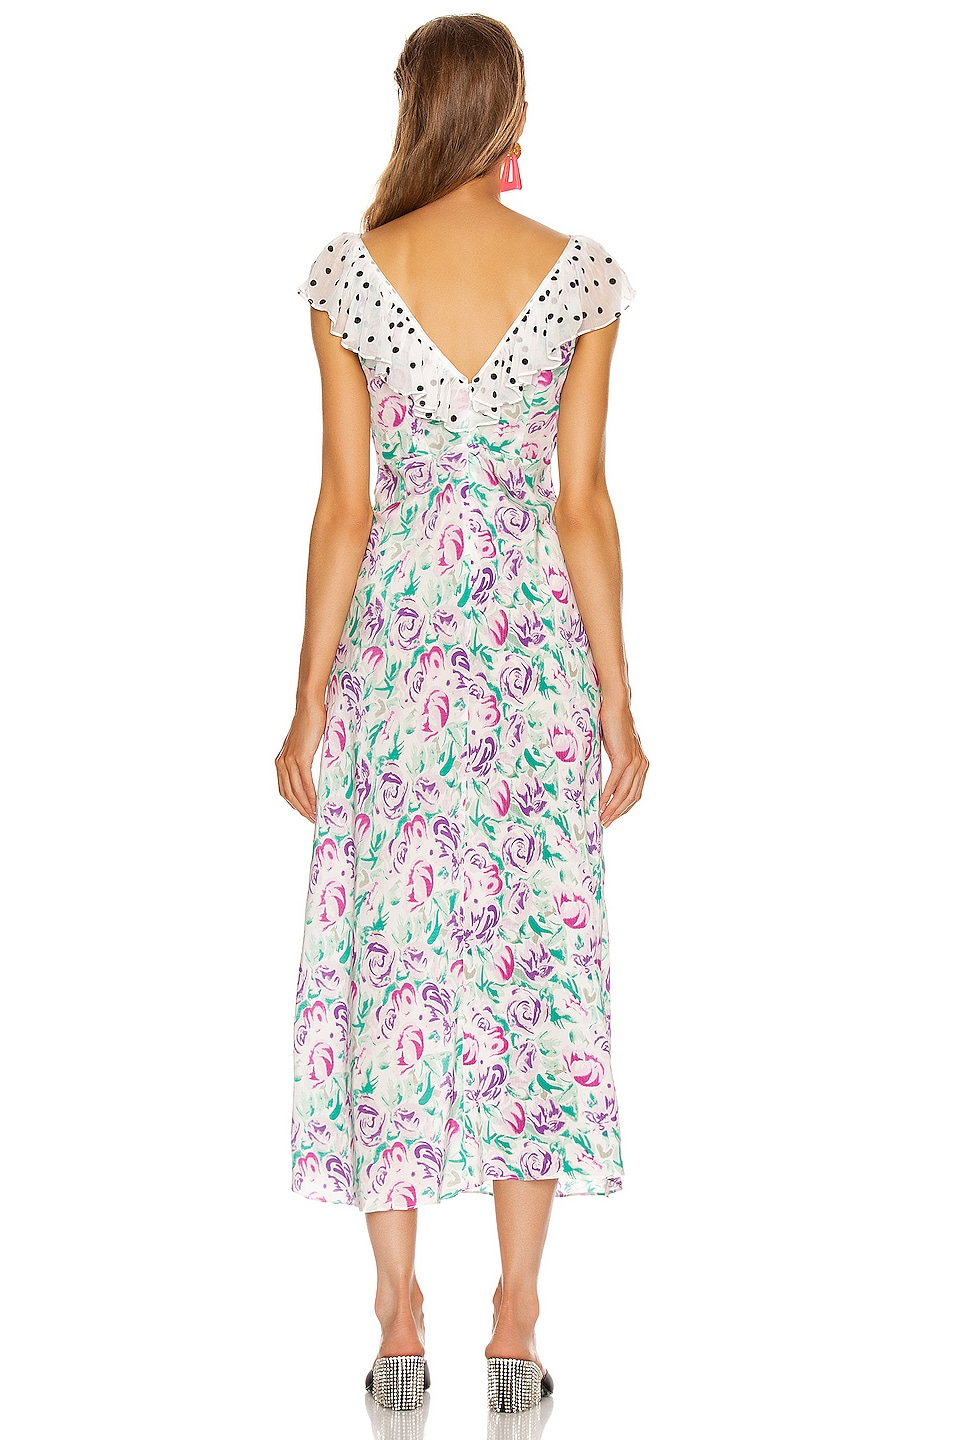 Image 3 of RIXO Antoinette Maxi Dress in Polka Dot Italian Floral & Pink Teal